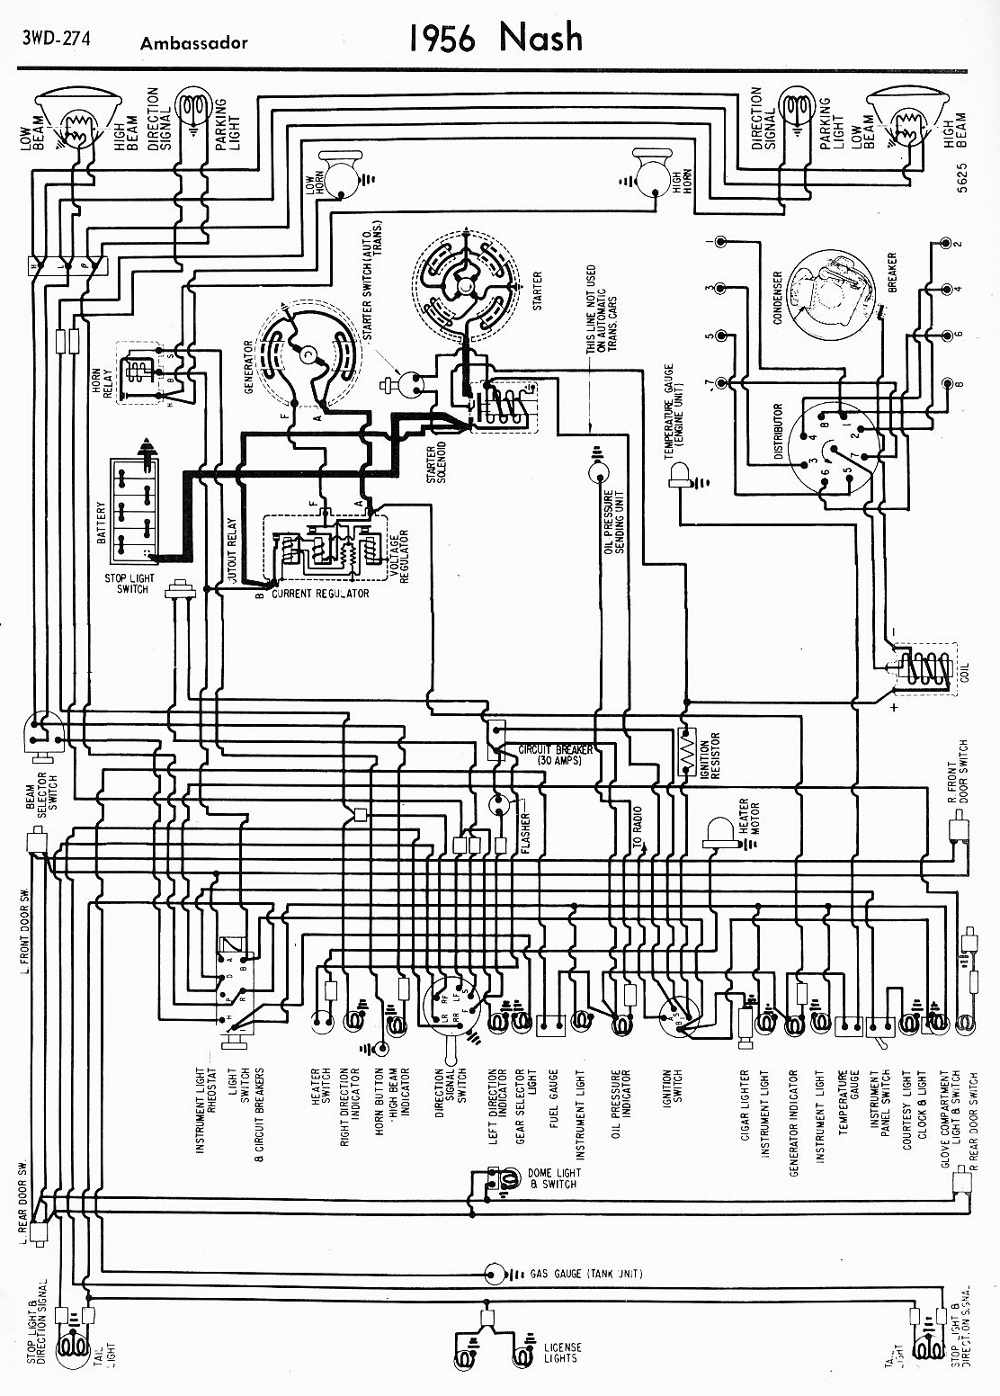 1956 Ford Thunderbird Ignition Schematic Electrical Wiring Diagrams 1946 Distributor Appealing Switch Diagram 71